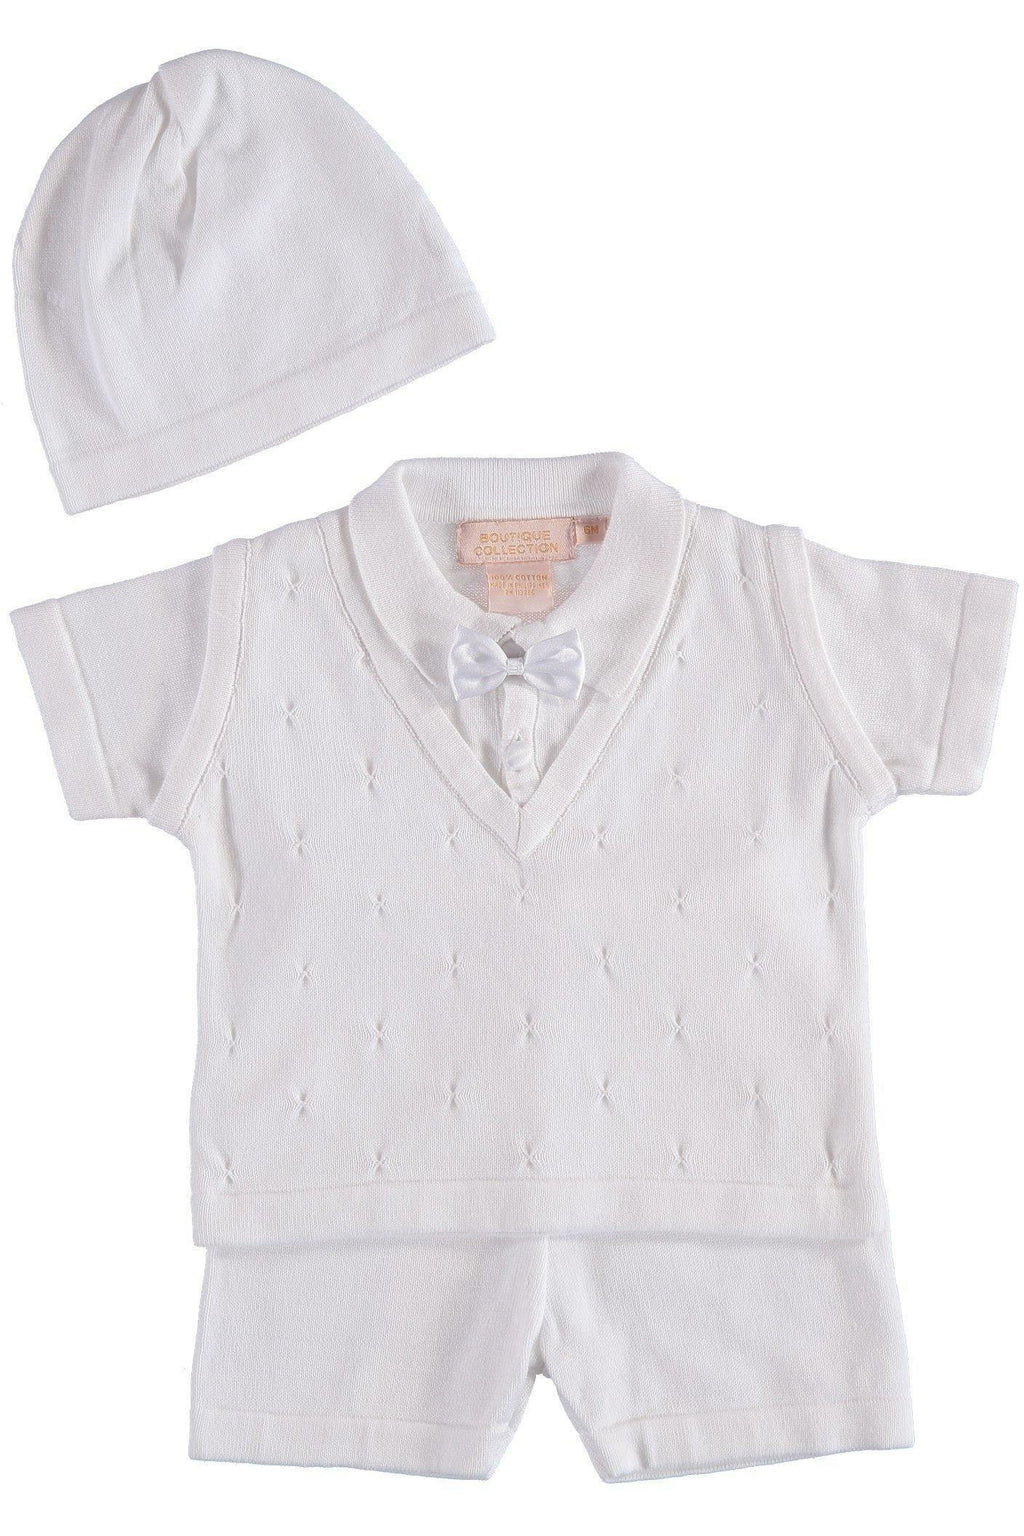 Baby Boy Knit White Short Set